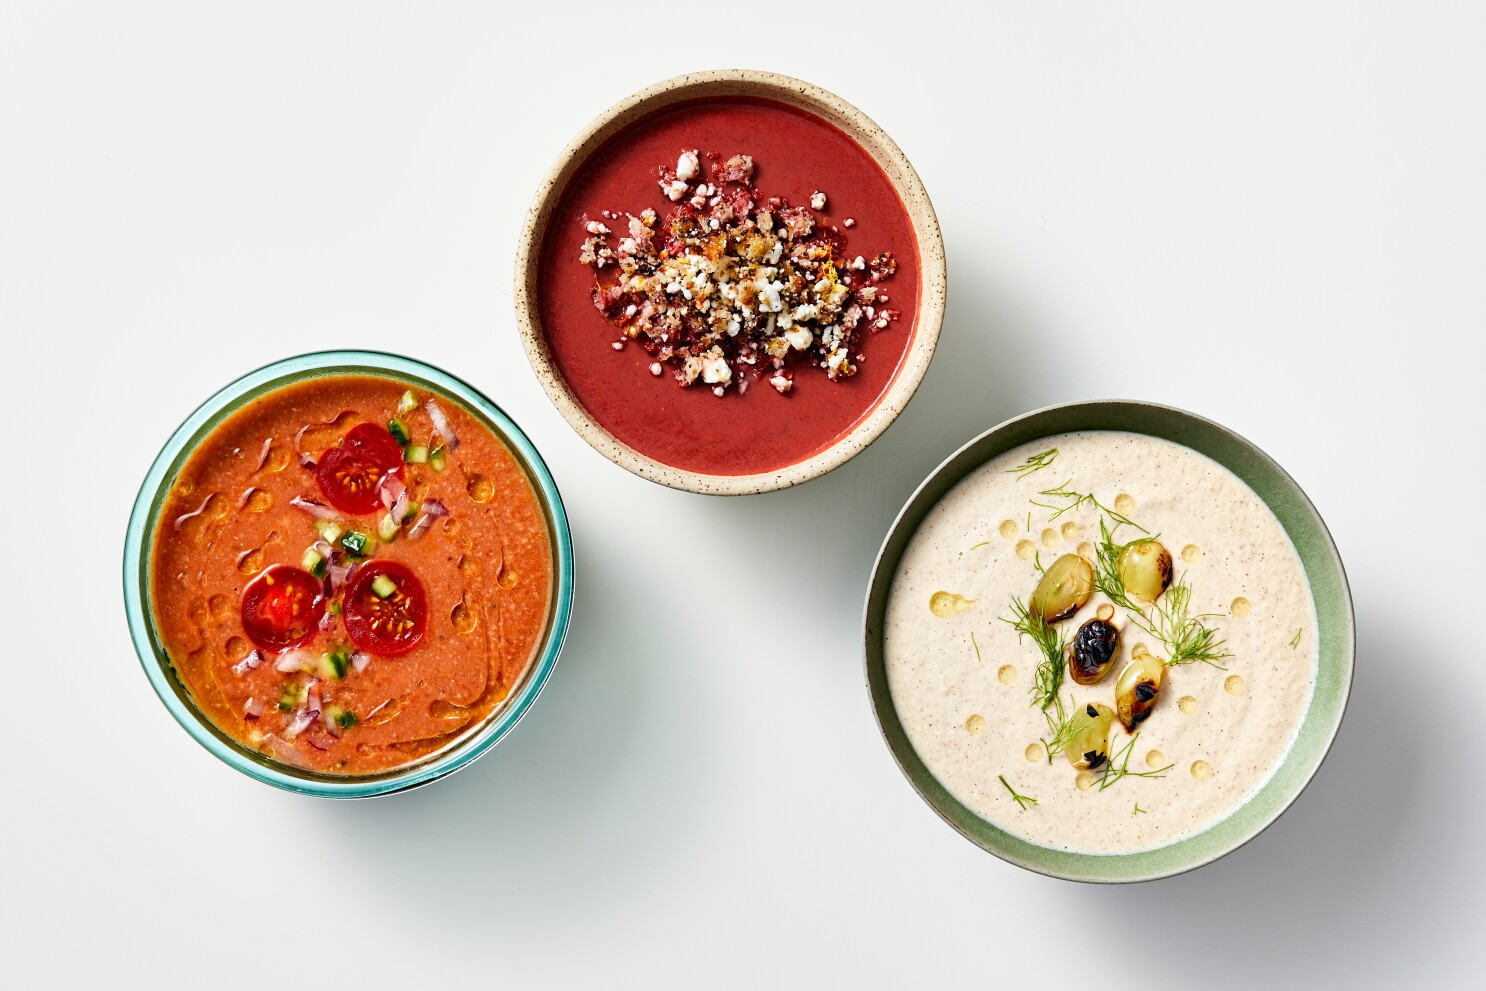 Stay chill once you grill with these 3 summer soups